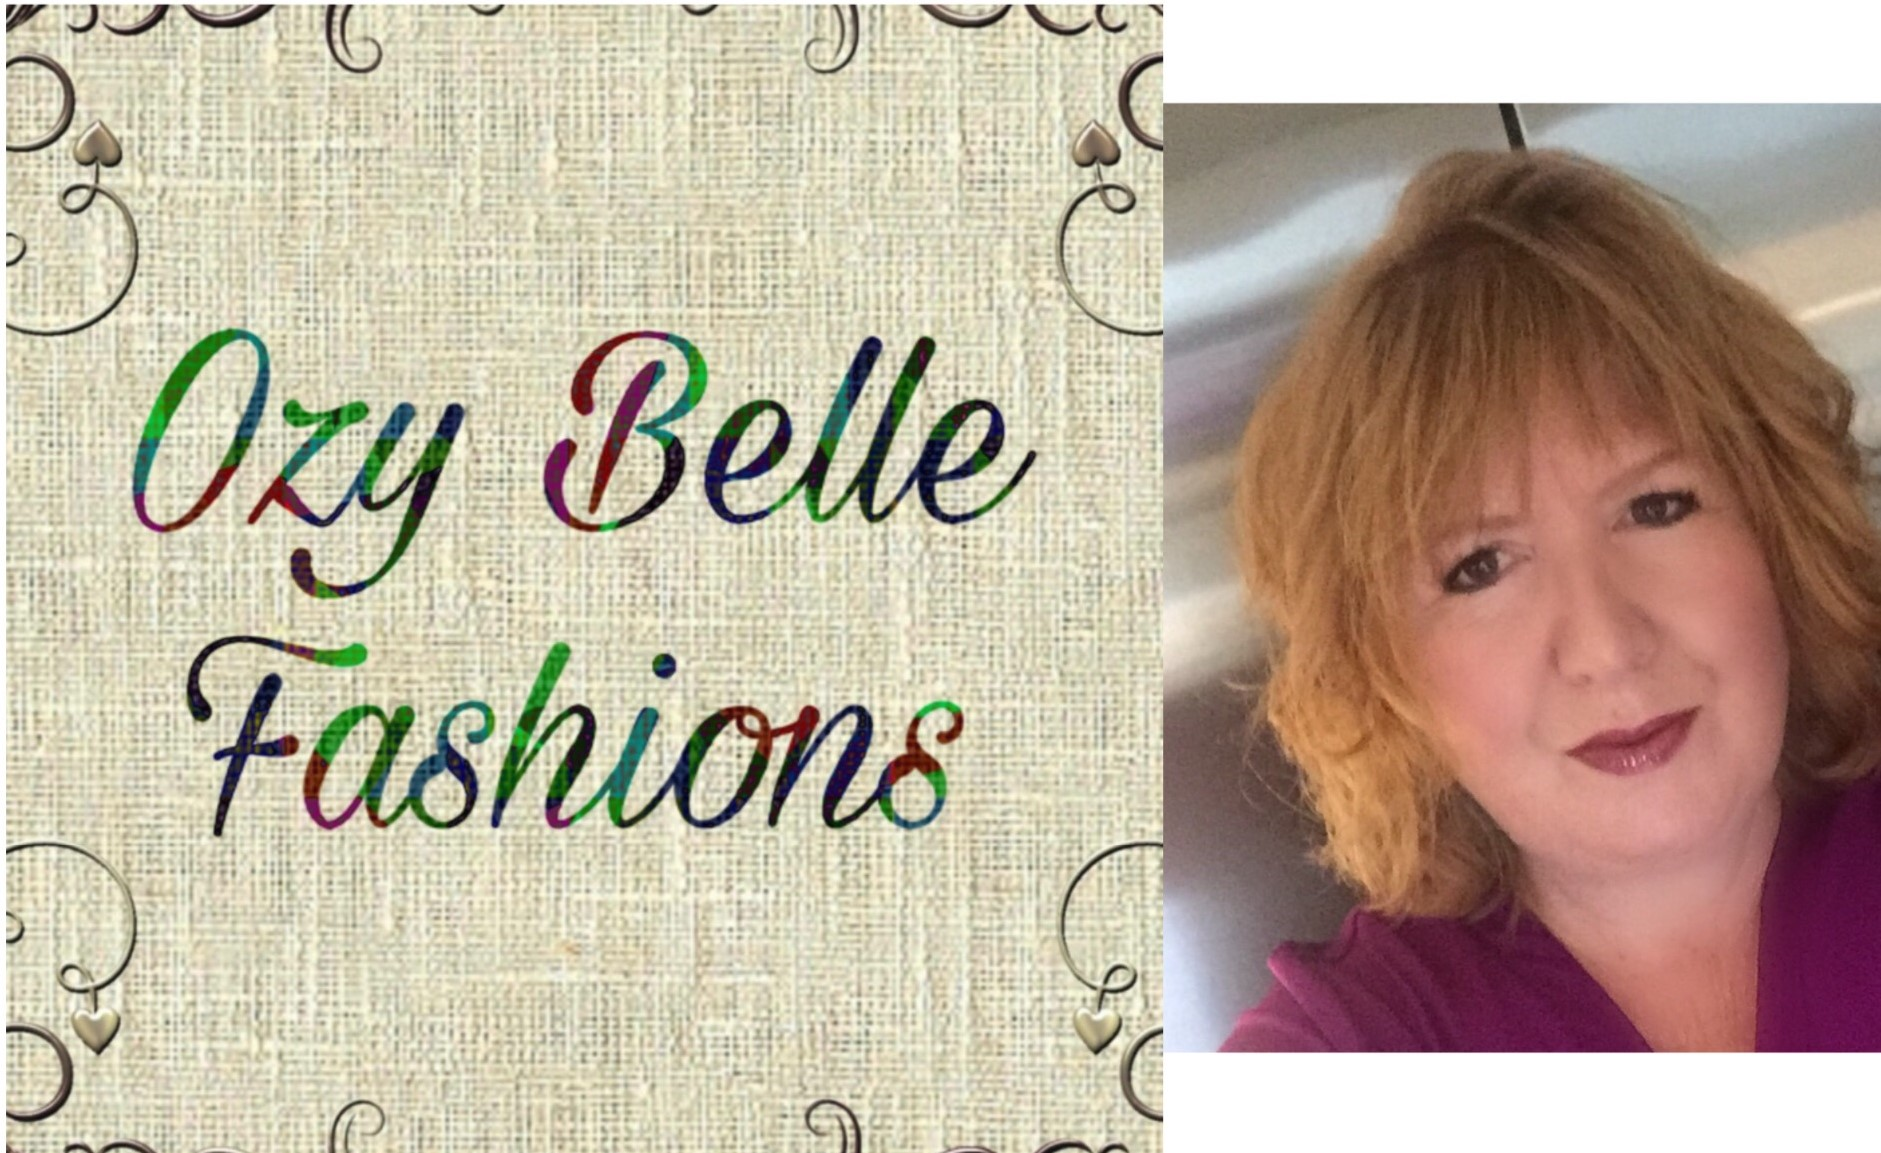 Ozy Belle Fashions